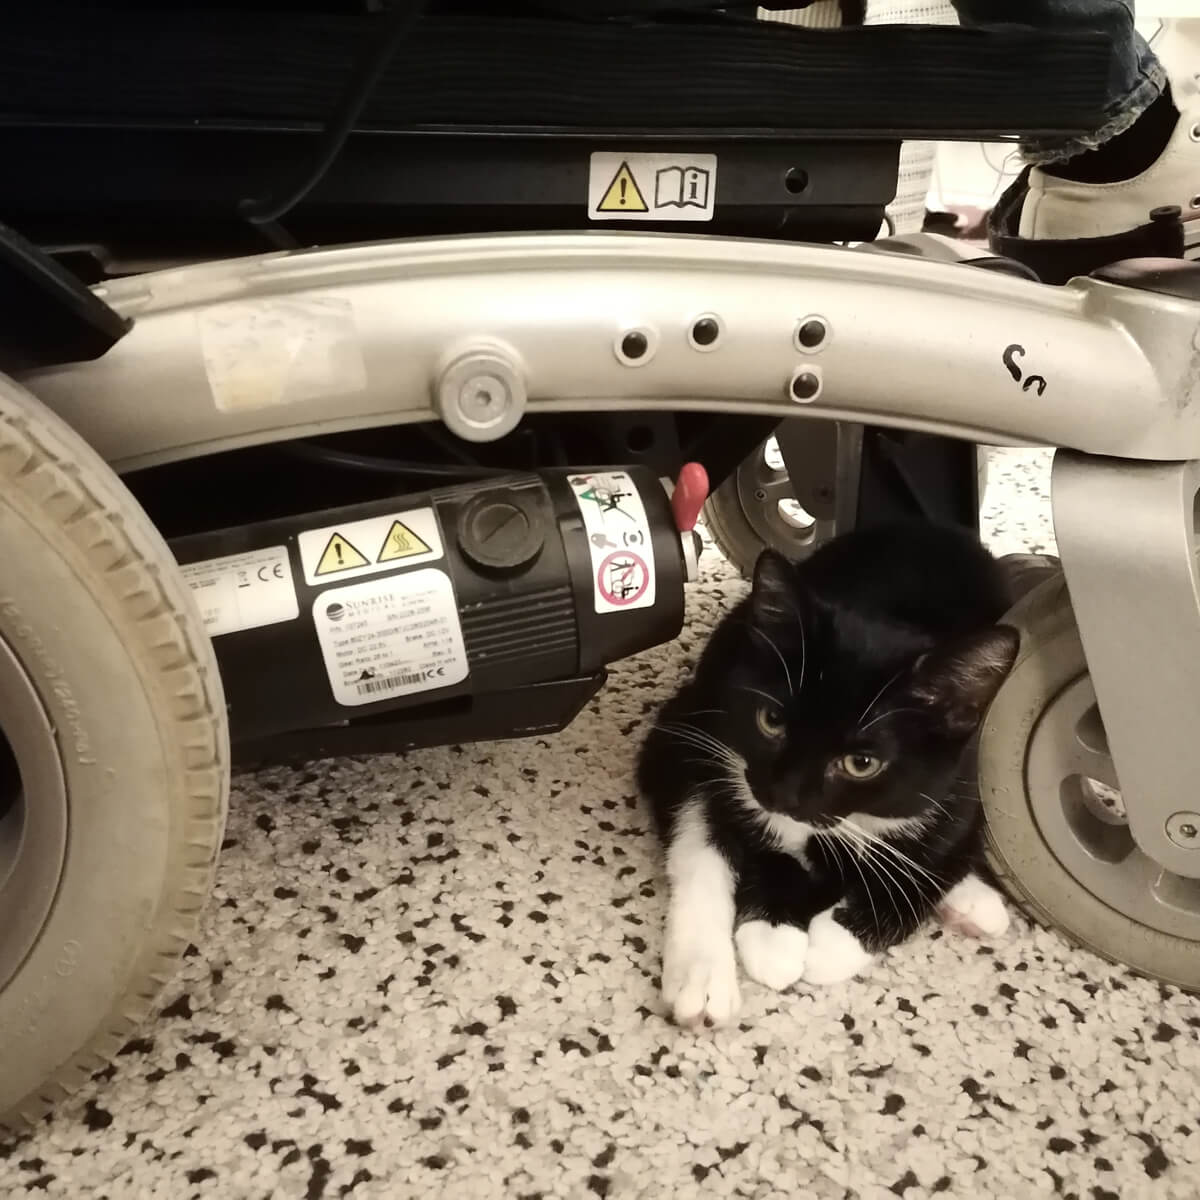 Tuxedo kitten Arlo laying under wheelchair with her legs sticking out at the front.